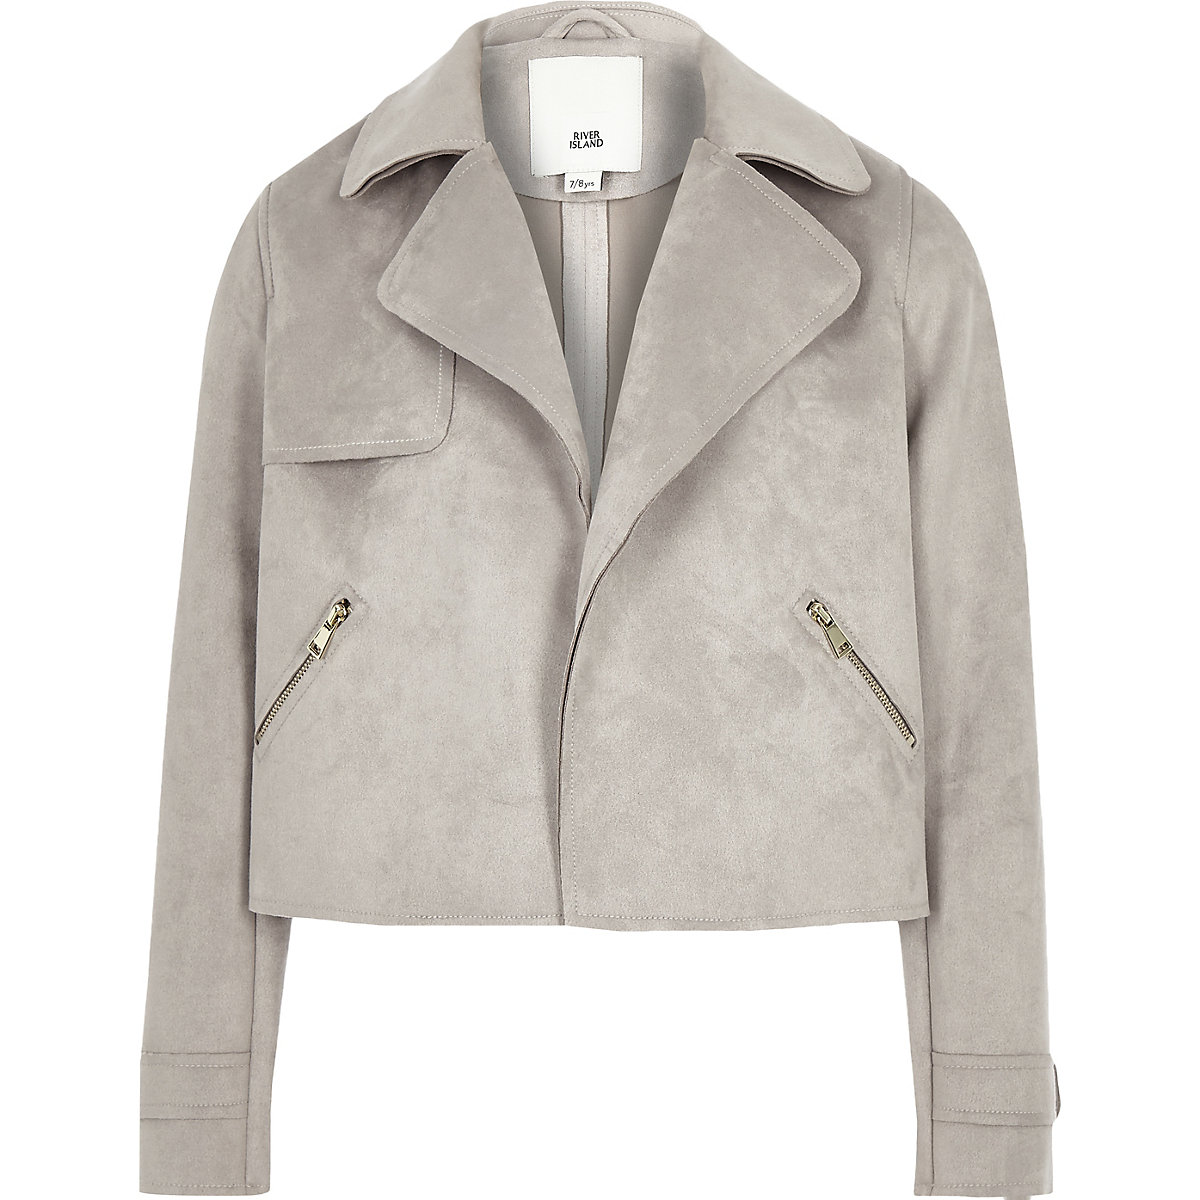 Girls grey faux suede trench jacket